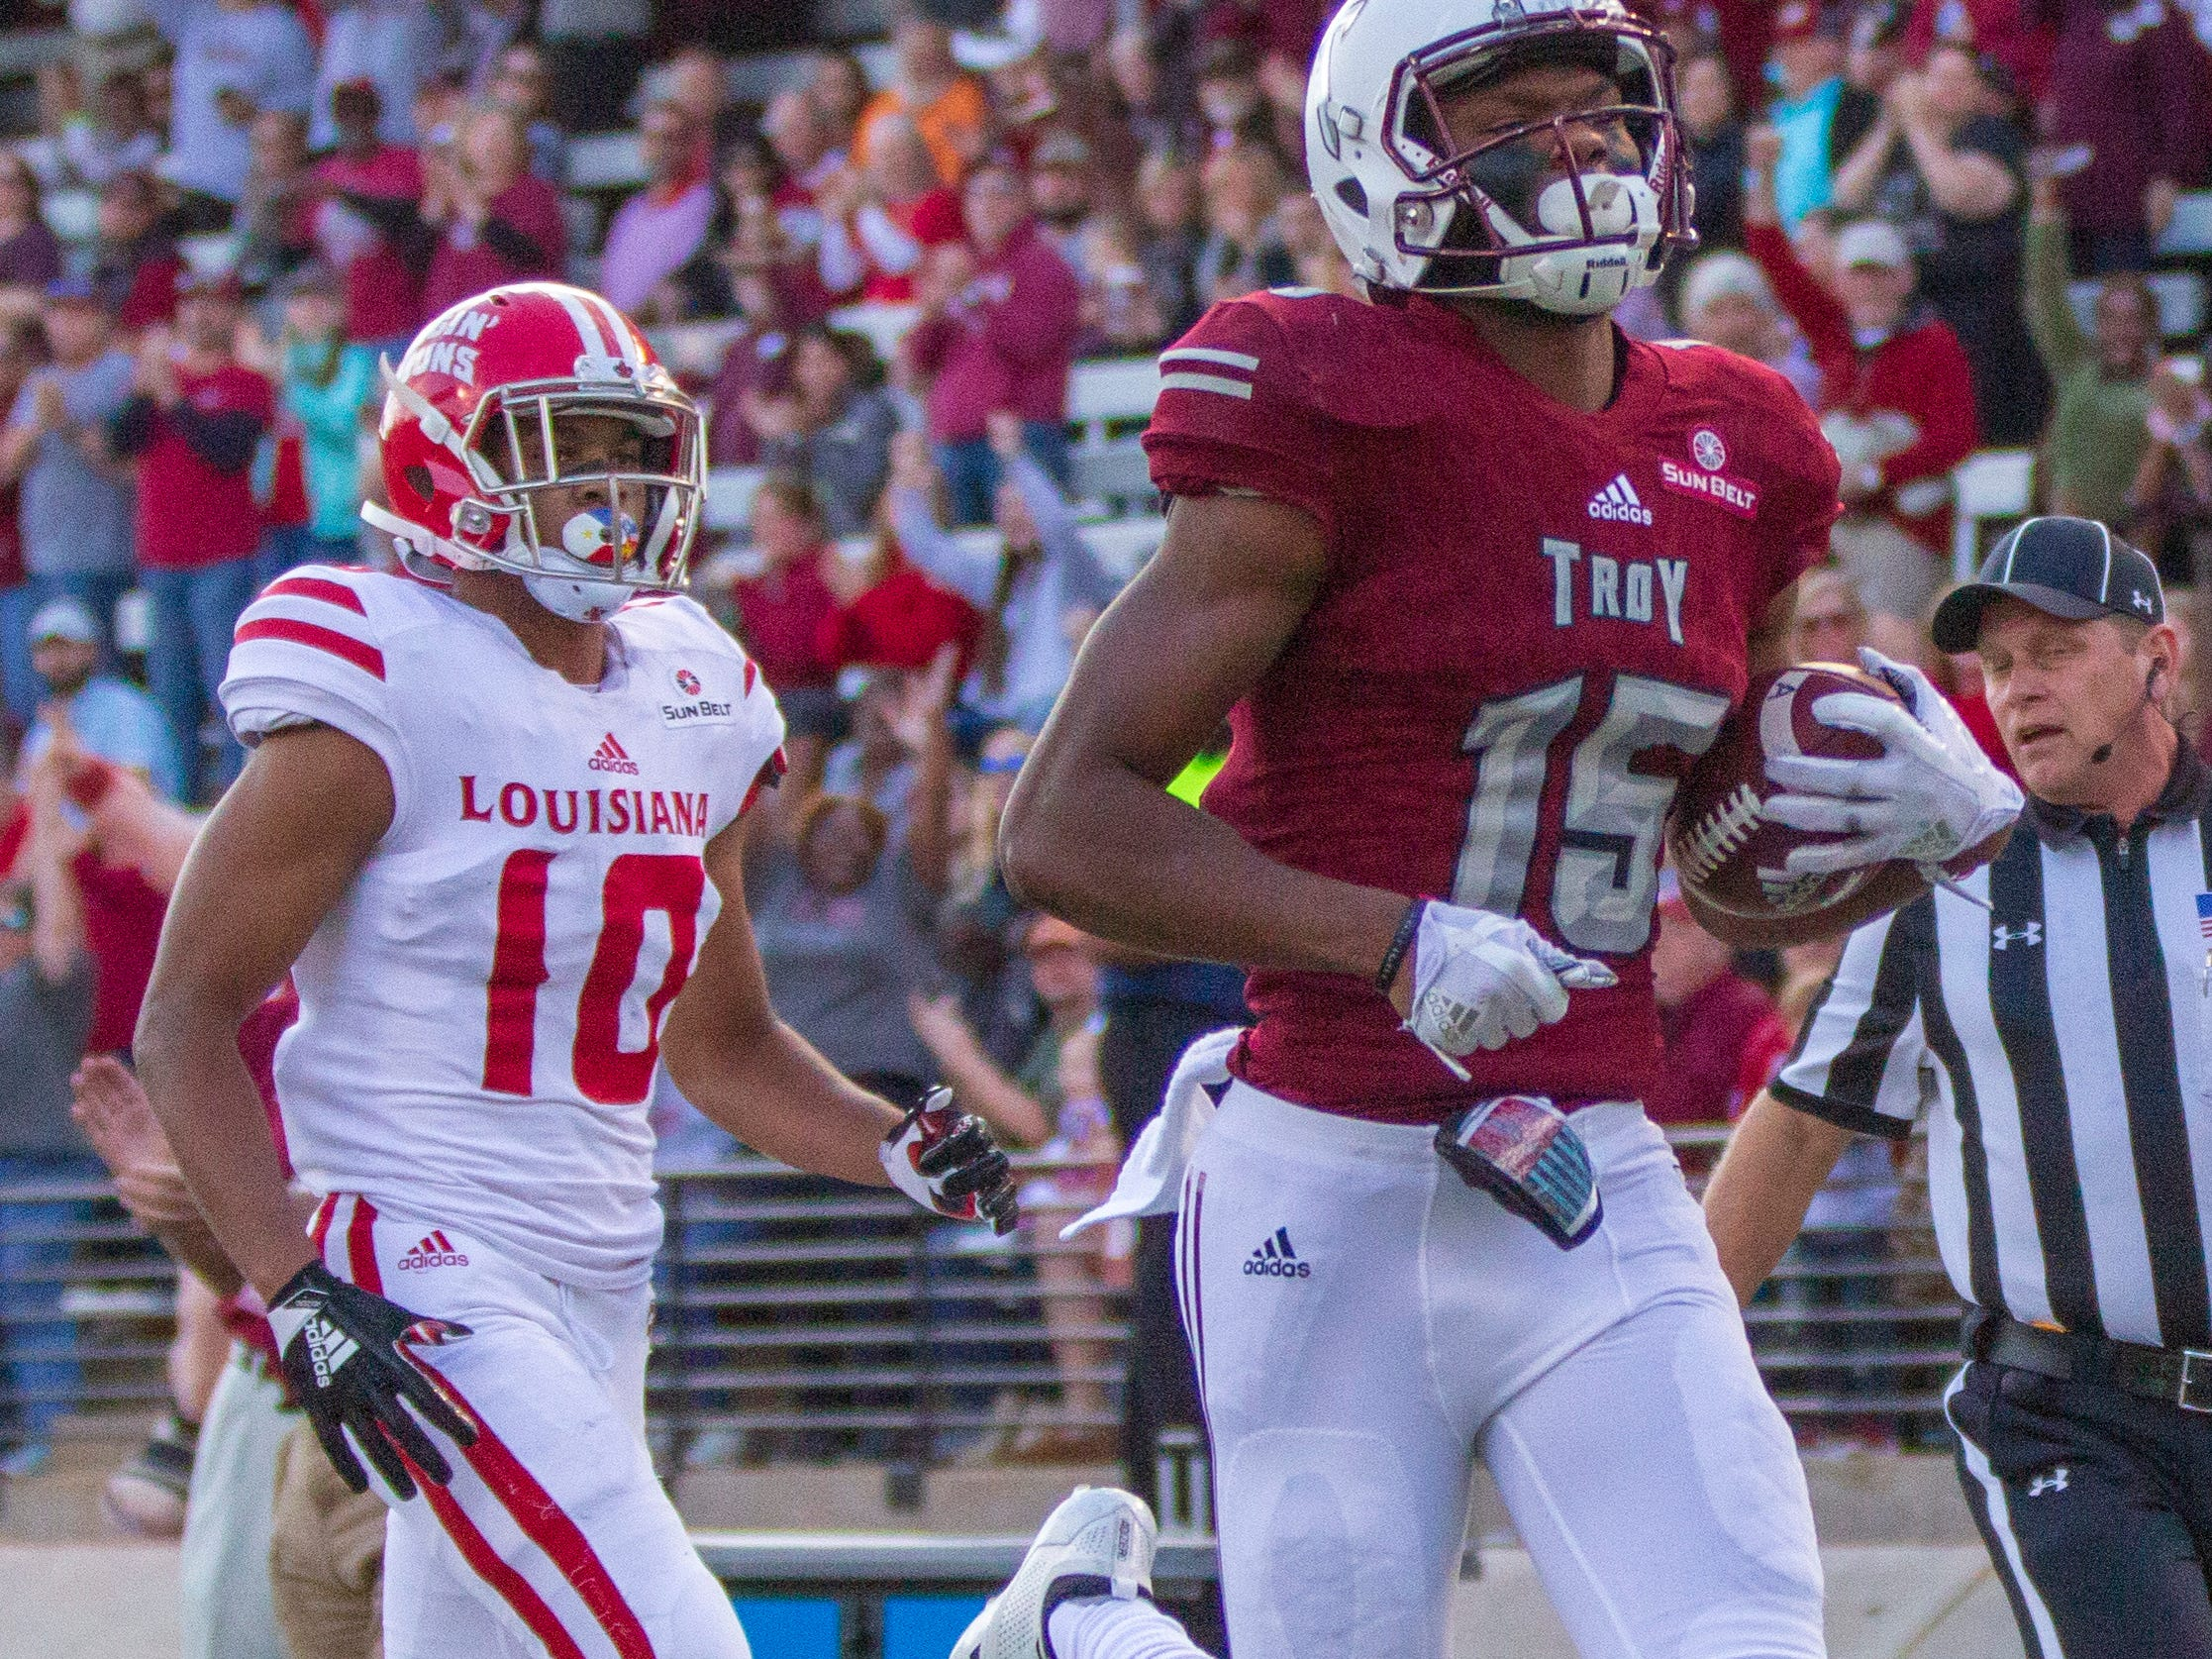 Troy's Damion Willis runs the ball in for the team's first touchdown of the game.